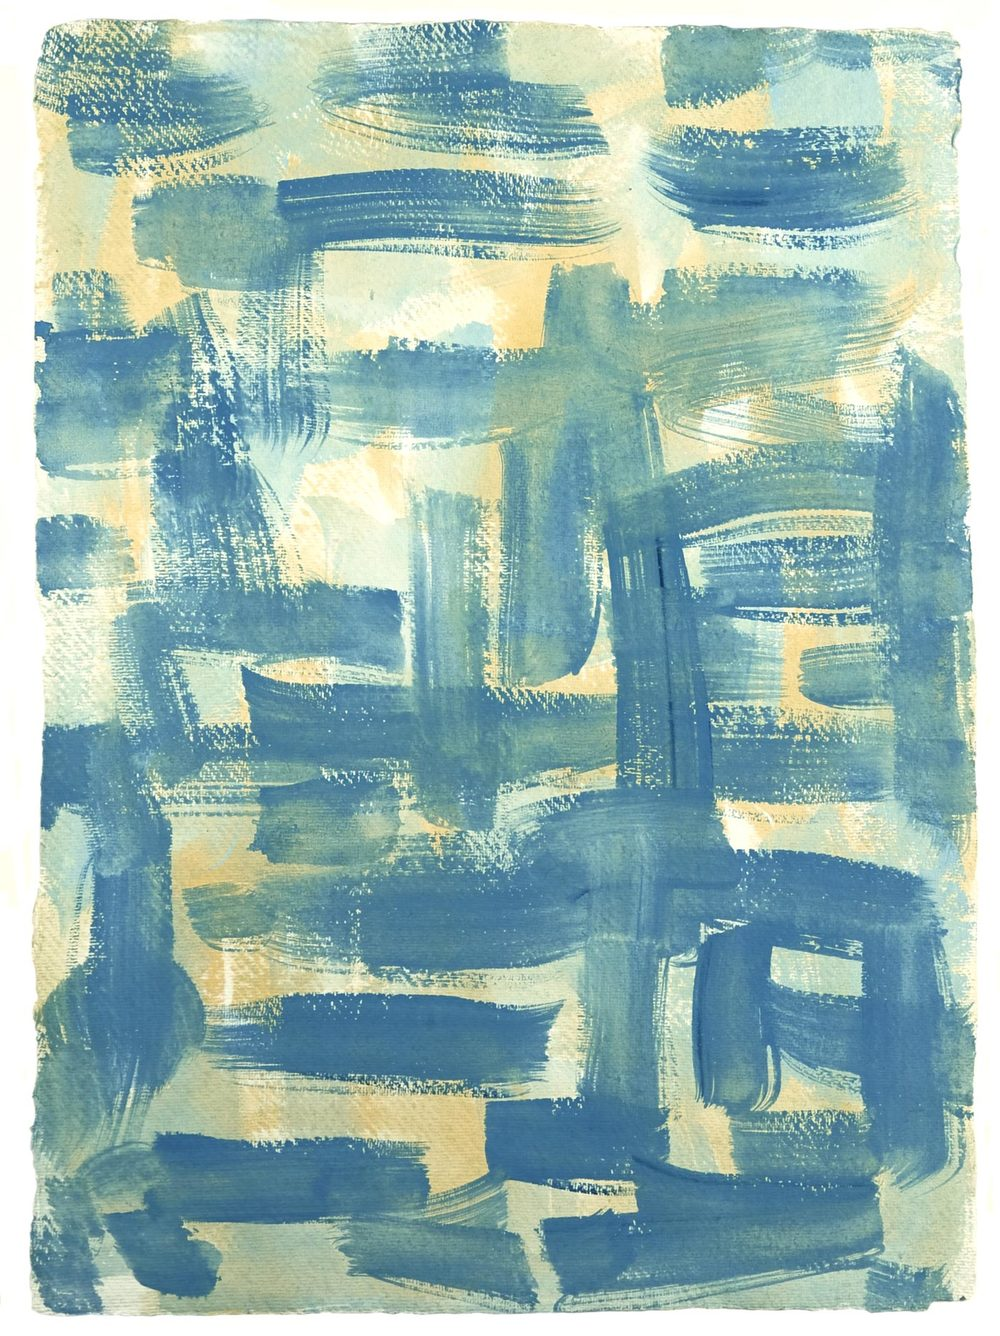 Nantucket 8 , 2011 casein on cotton rag paper 16.5 x 12.25 in.